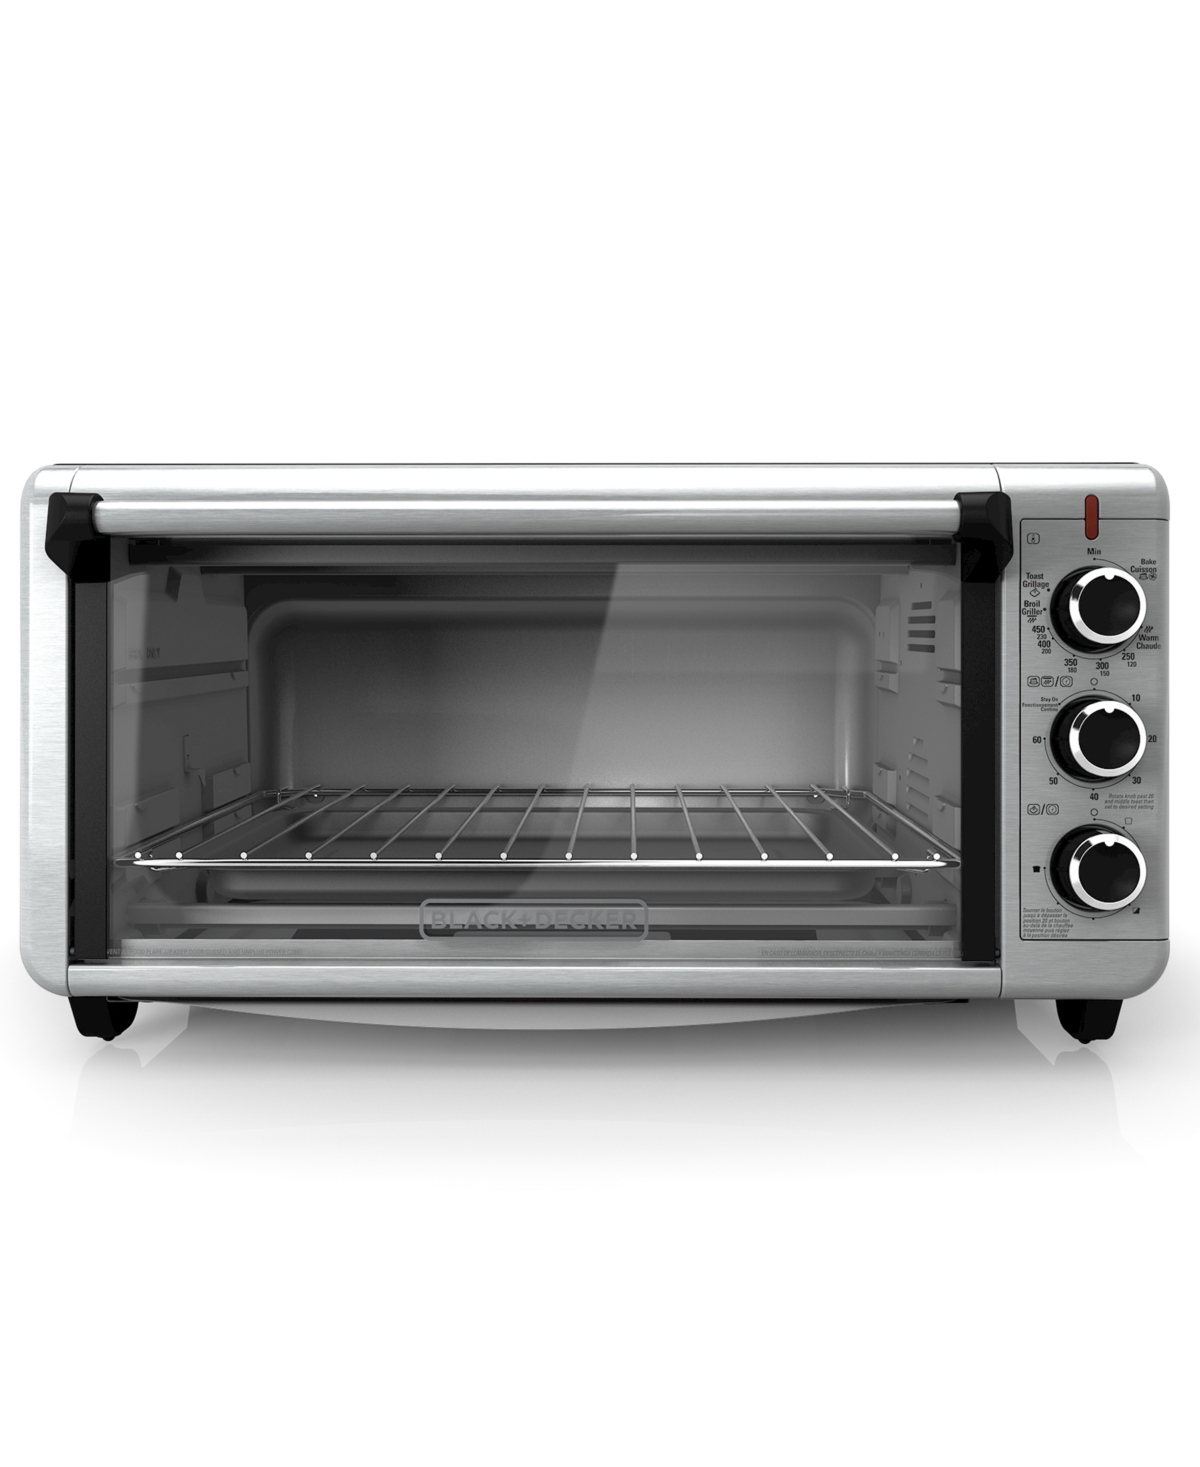 Black & Decker 8-Slice Extra-Wide Convection Toaster Oven